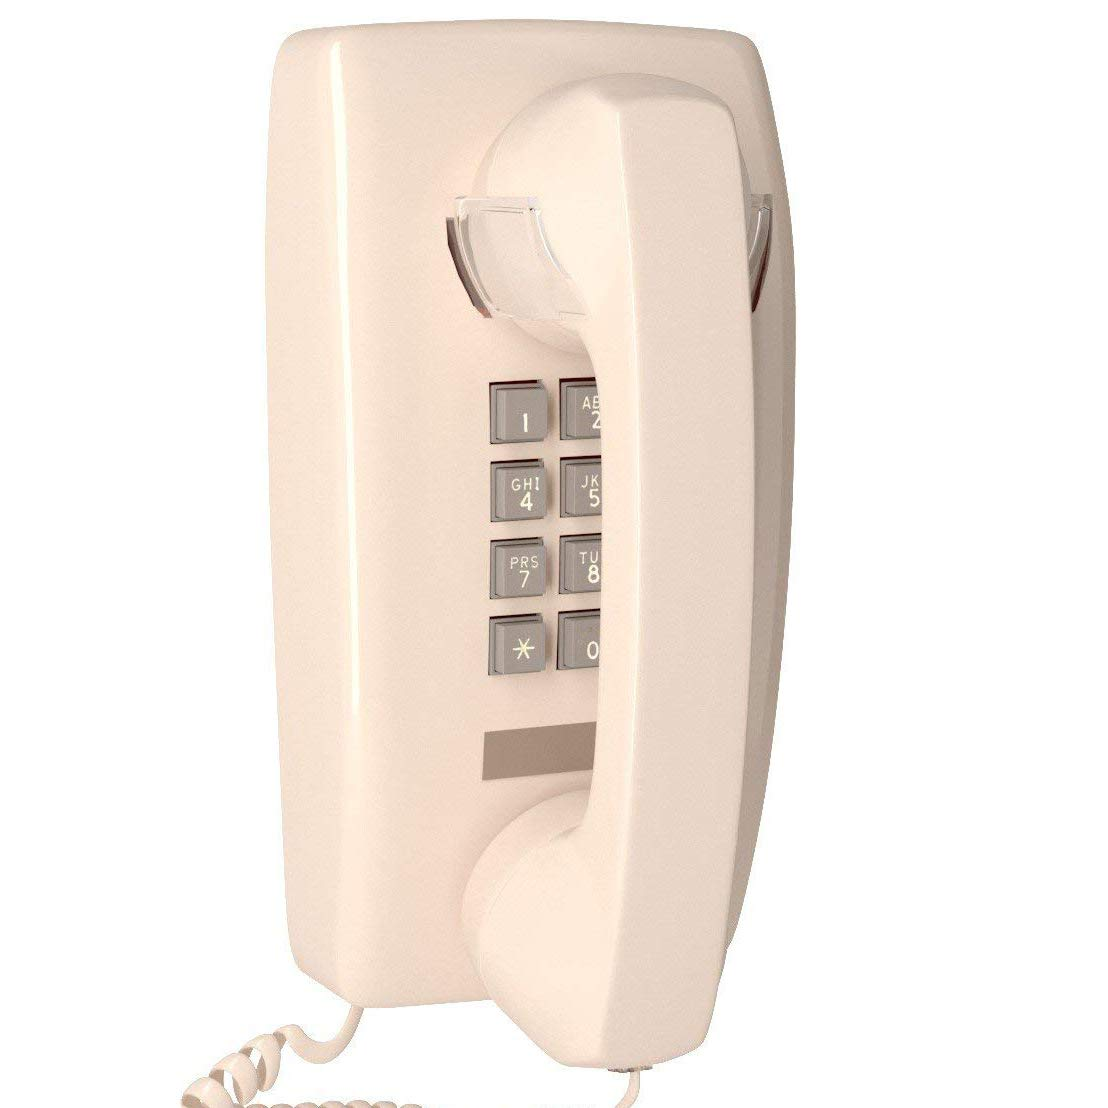 Home Intuition Single Line Wall Mounted Corded Telephone with Extra Loud Ringer, Ash